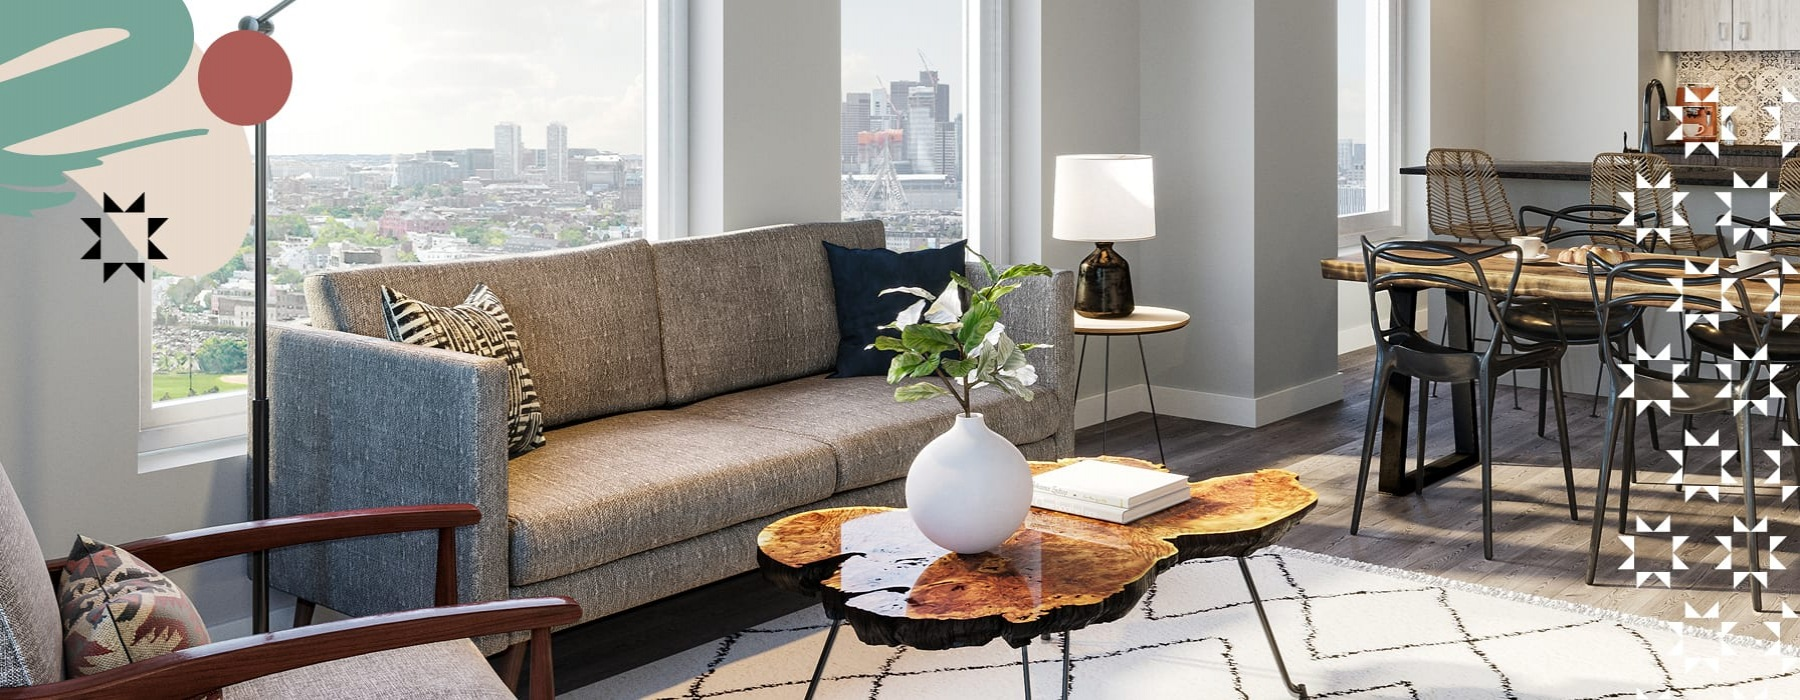 graphic showing a spacious living room with modern decor